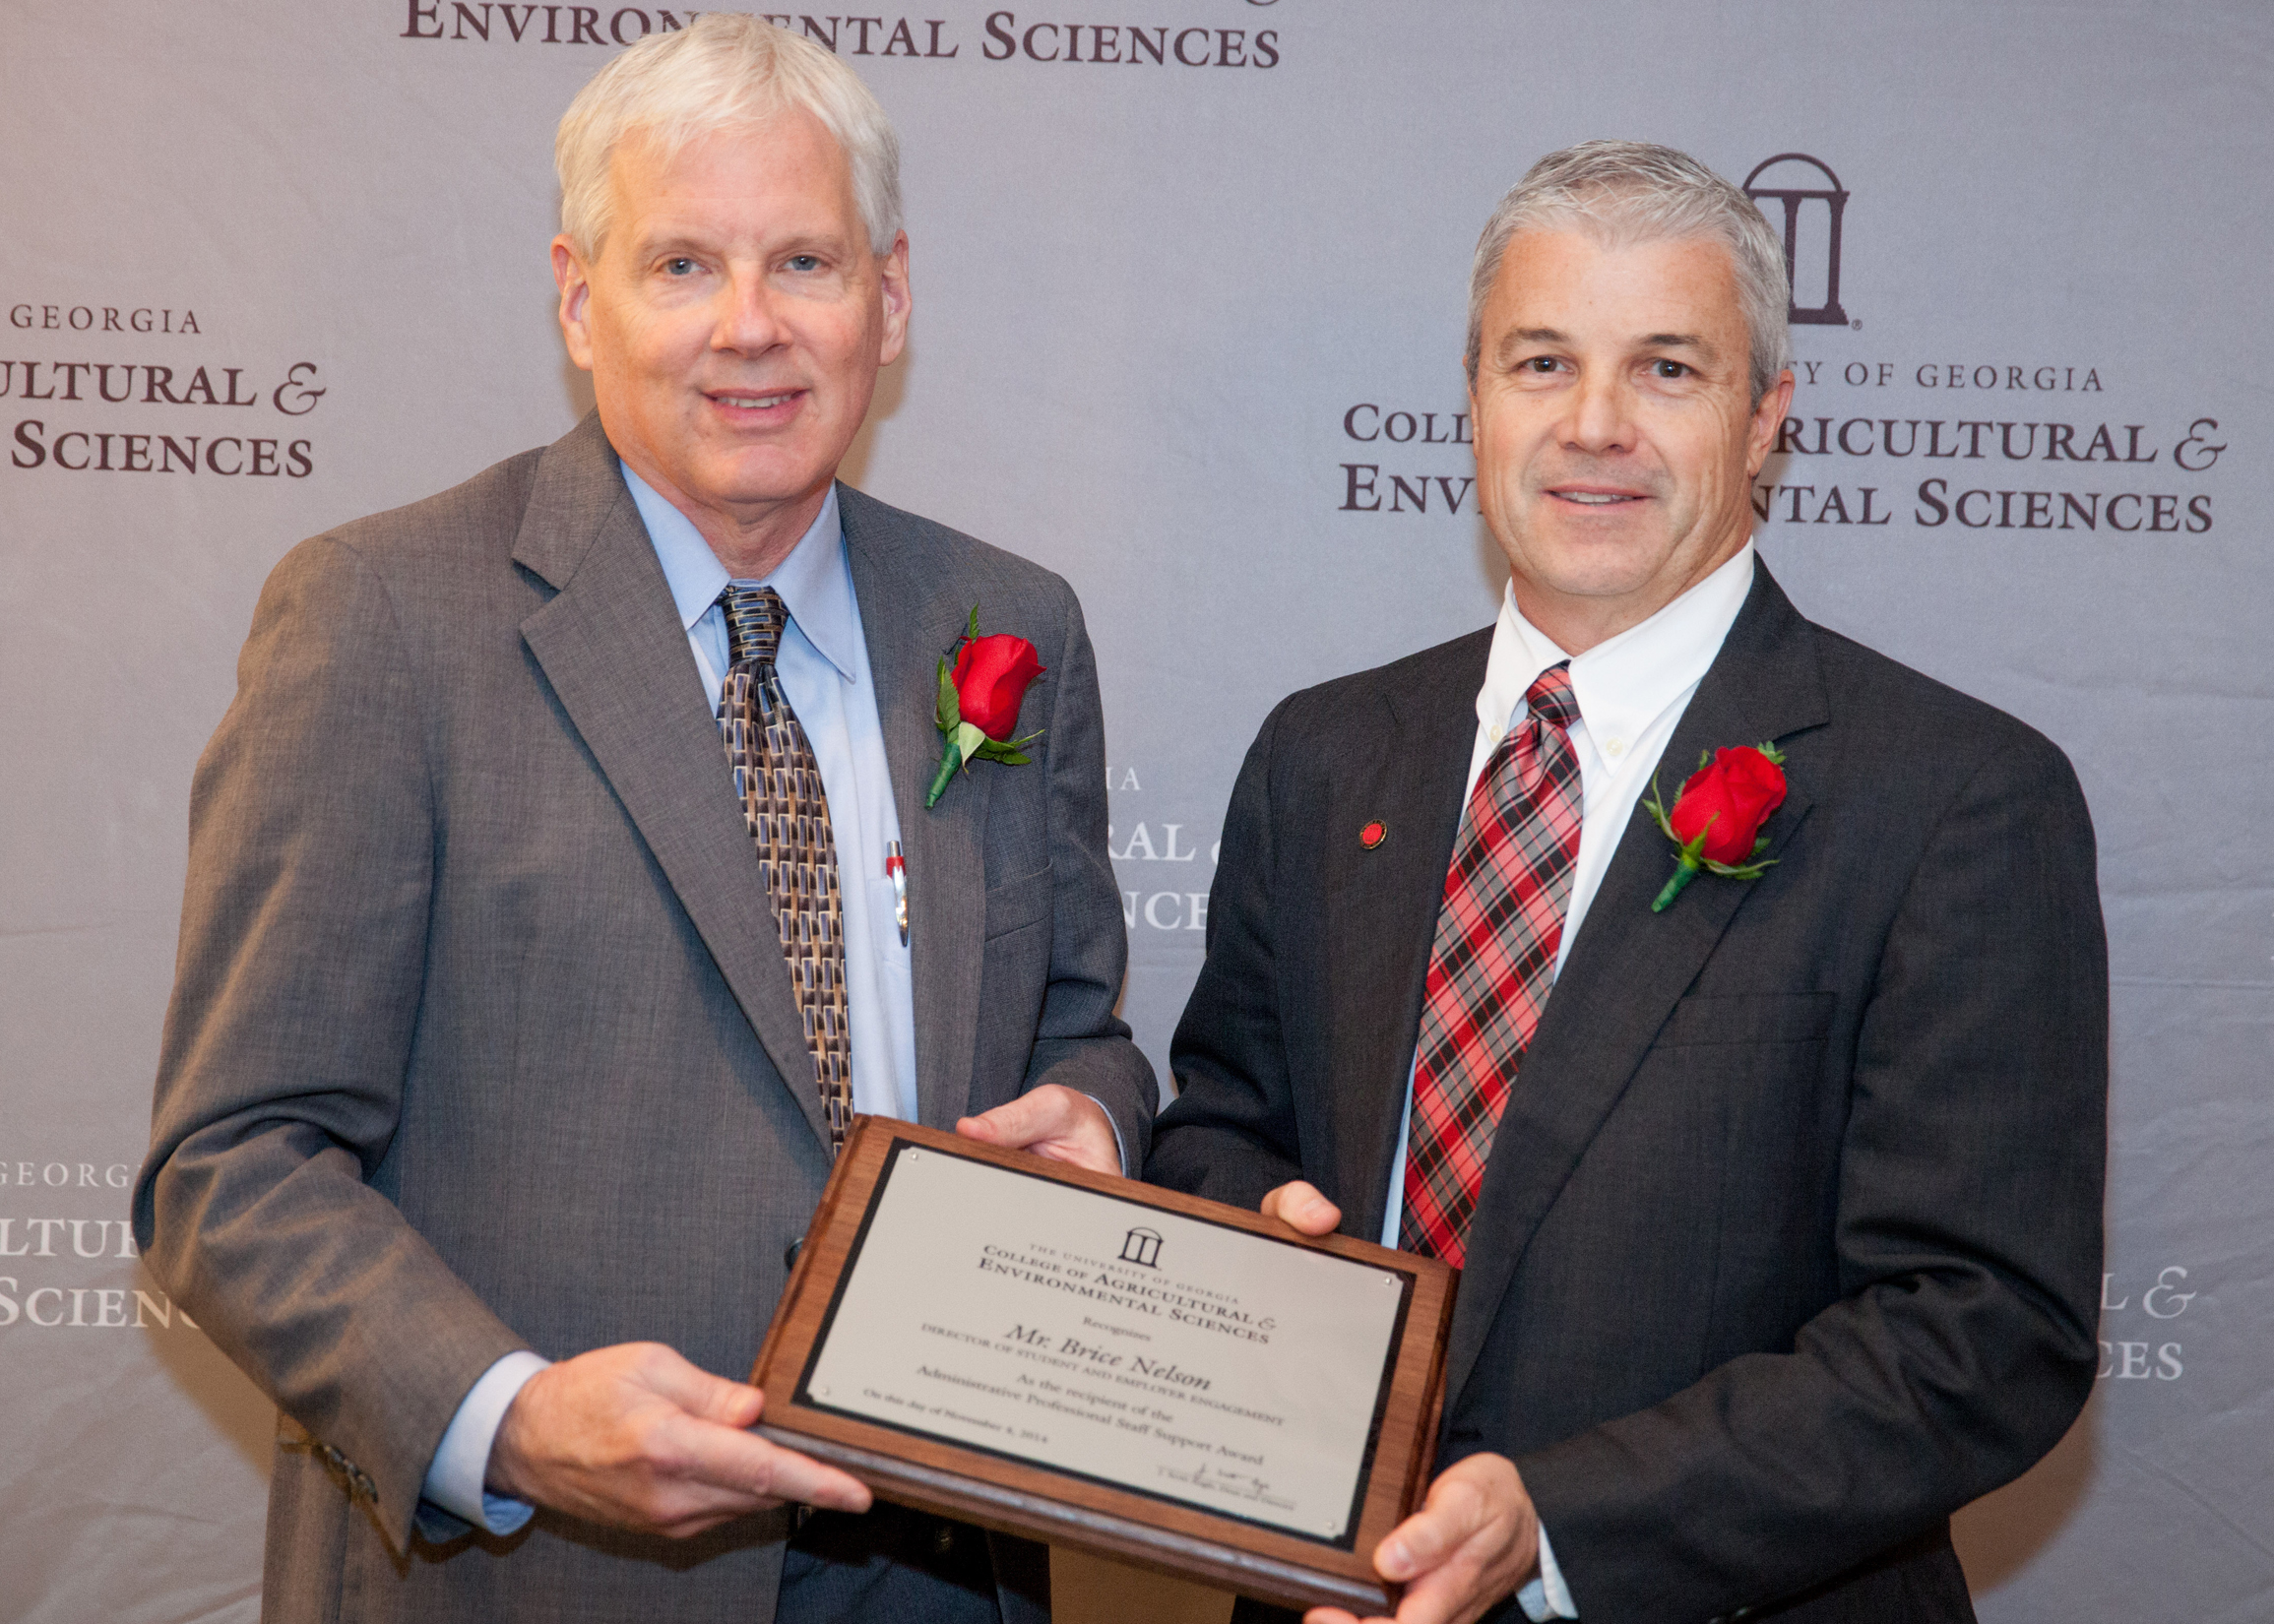 Dean J. Scott Angle presents Brice Nelson, director of student and employer engagement, with the CAES Staff Award for Administrative or Professional Support. Nelson has led the college's student recruitment efforts for the past decade and has helped to nearly double the college's enrollment.